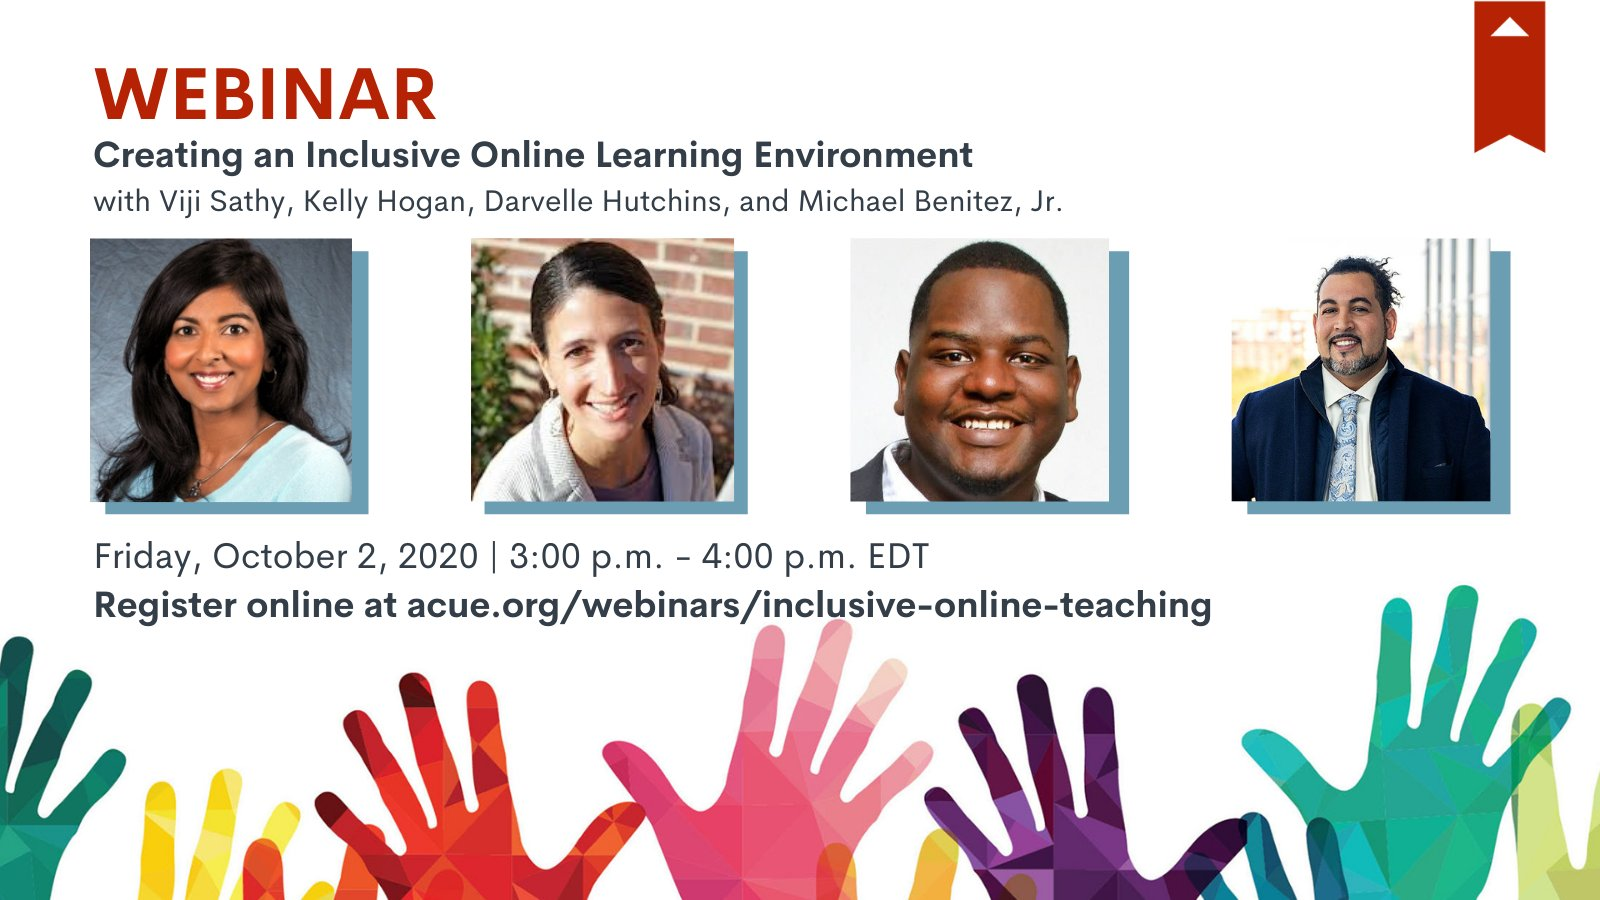 10/2/2020 ACUE webinar: Creating an Inclusive Online Learning Environment